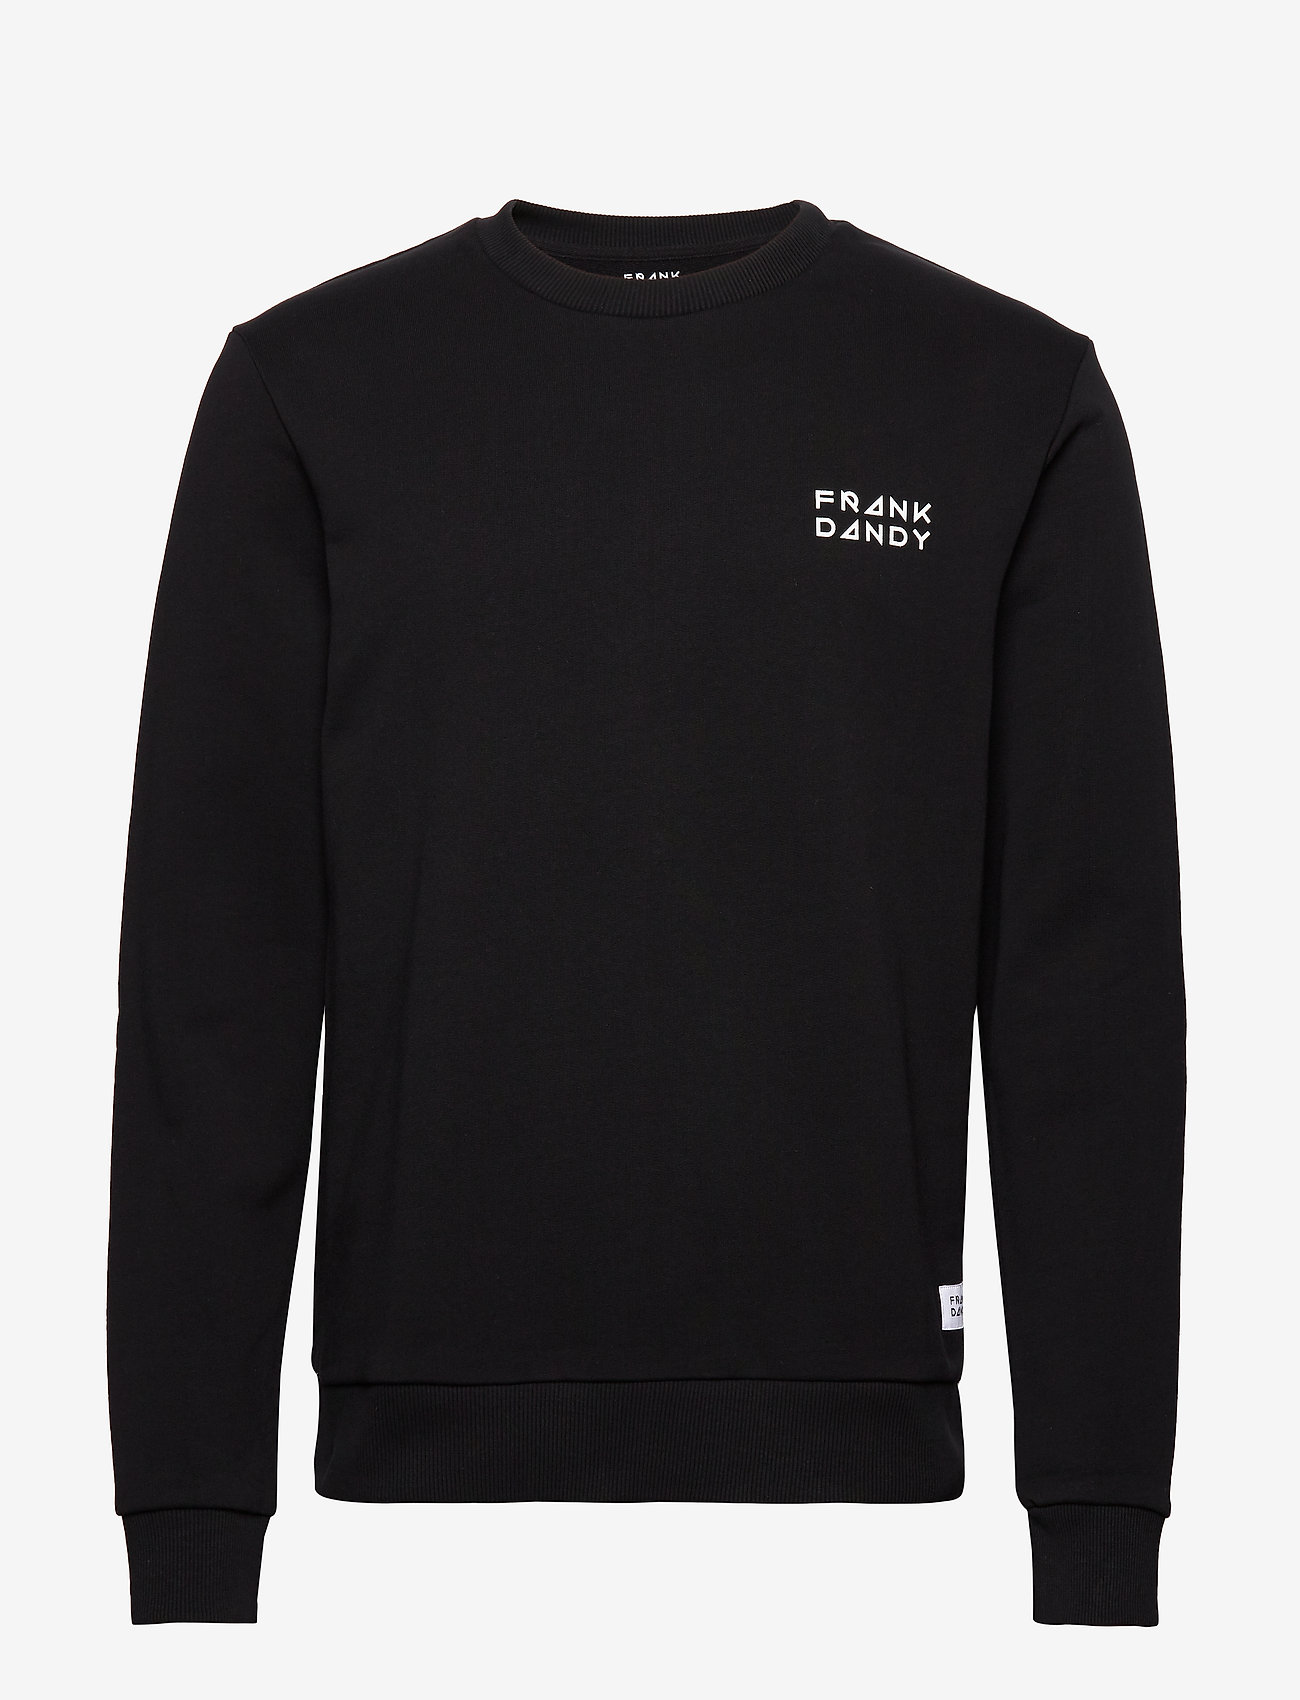 Frank Dandy - Unisex Solid Crew - basic sweatshirts - black - 0